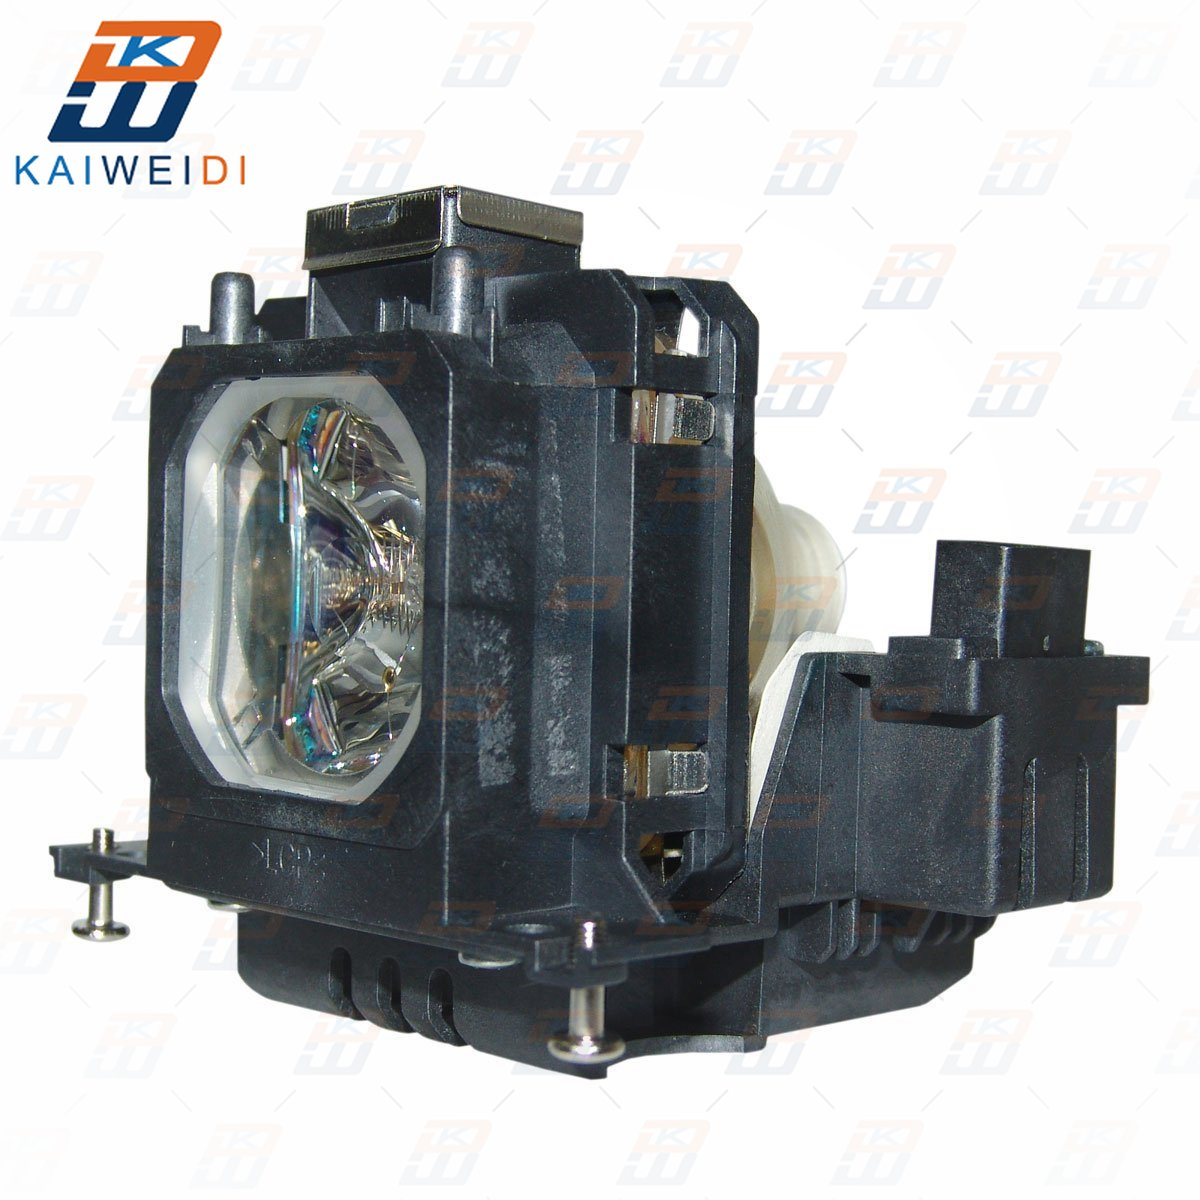 POA-LMP135 Replacement Lamp With Housing For Sanyo SANYO PLV-1080HD/PLV-Z2000/PLV-Z3000/PLV-Z4000/PLV-Z700/PLV-Z800 Projectors